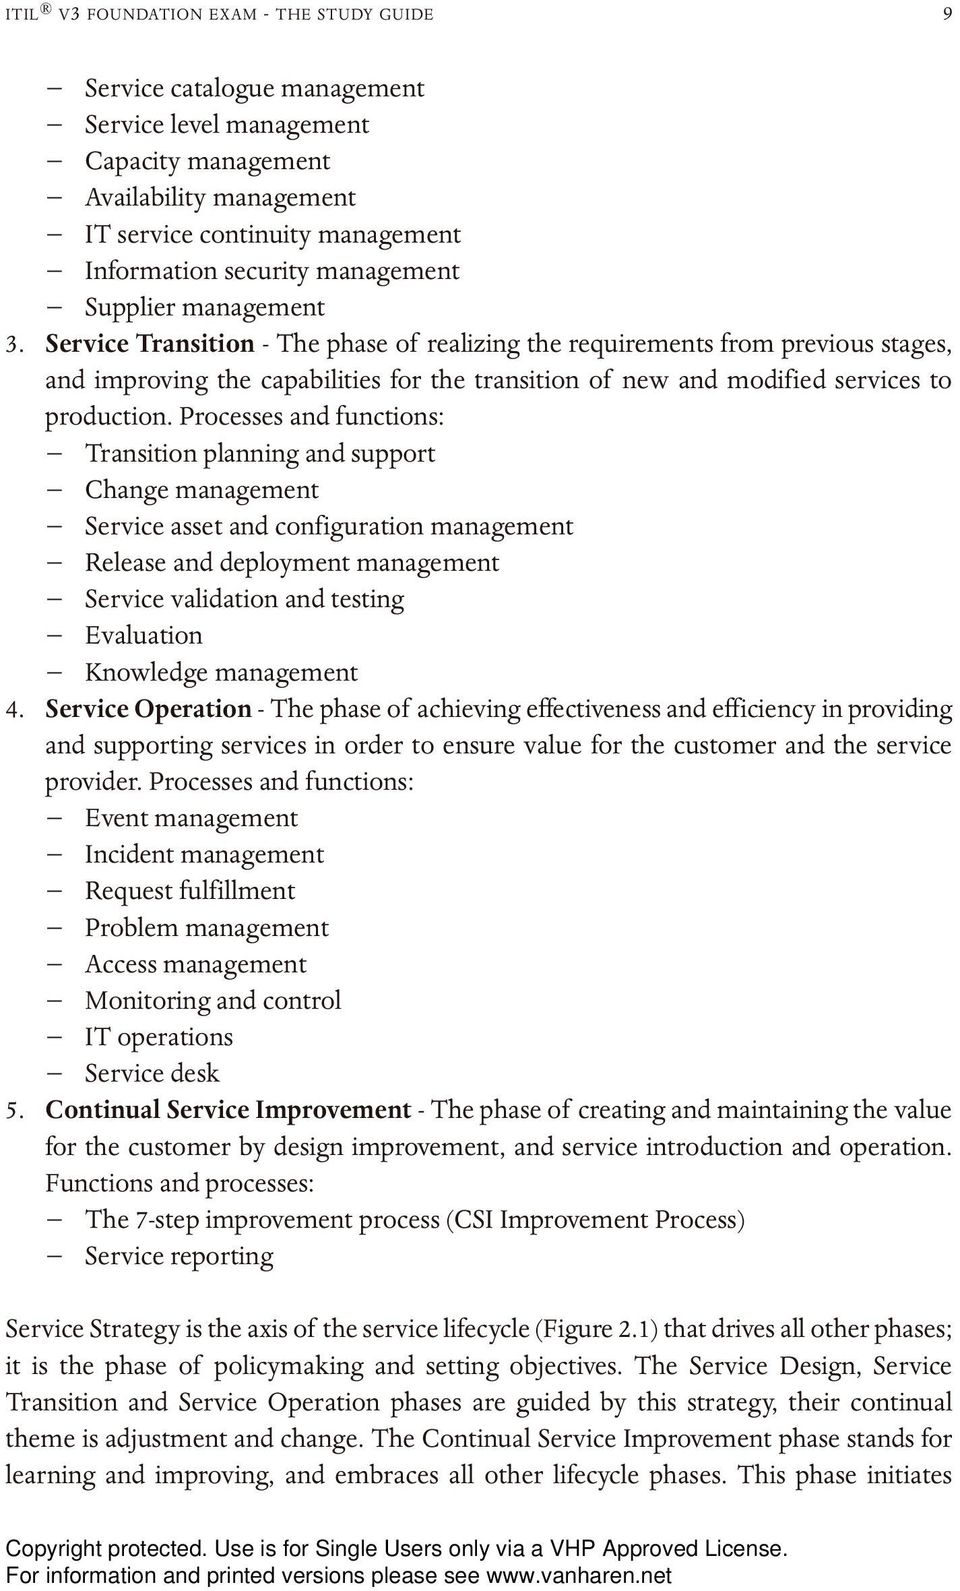 Service Transition - The phase of realizing the requirements from previous stages, and improving the capabilities for the transition of new and modified services to production.